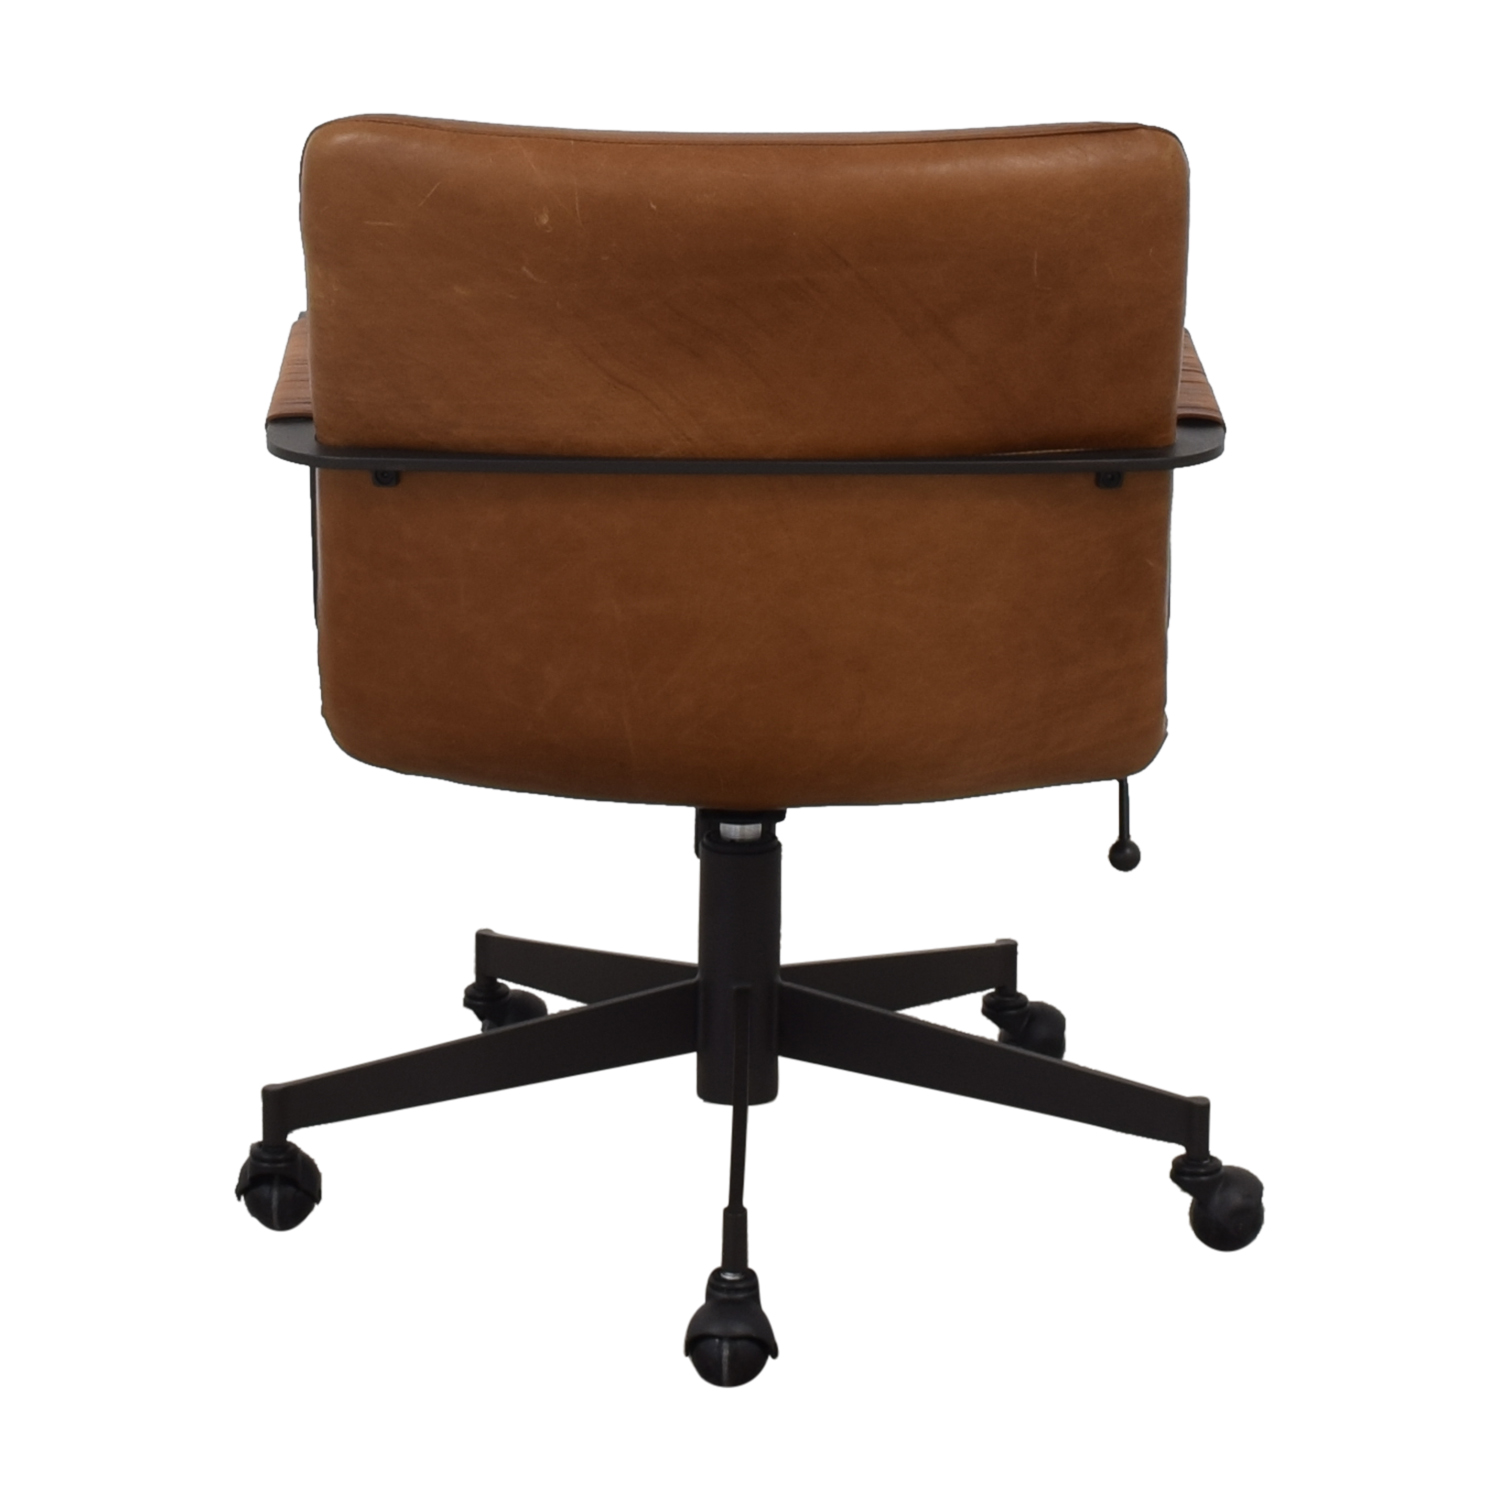 buy West Elm Cooper Mid-Century Swivel Office Chair West Elm Chairs